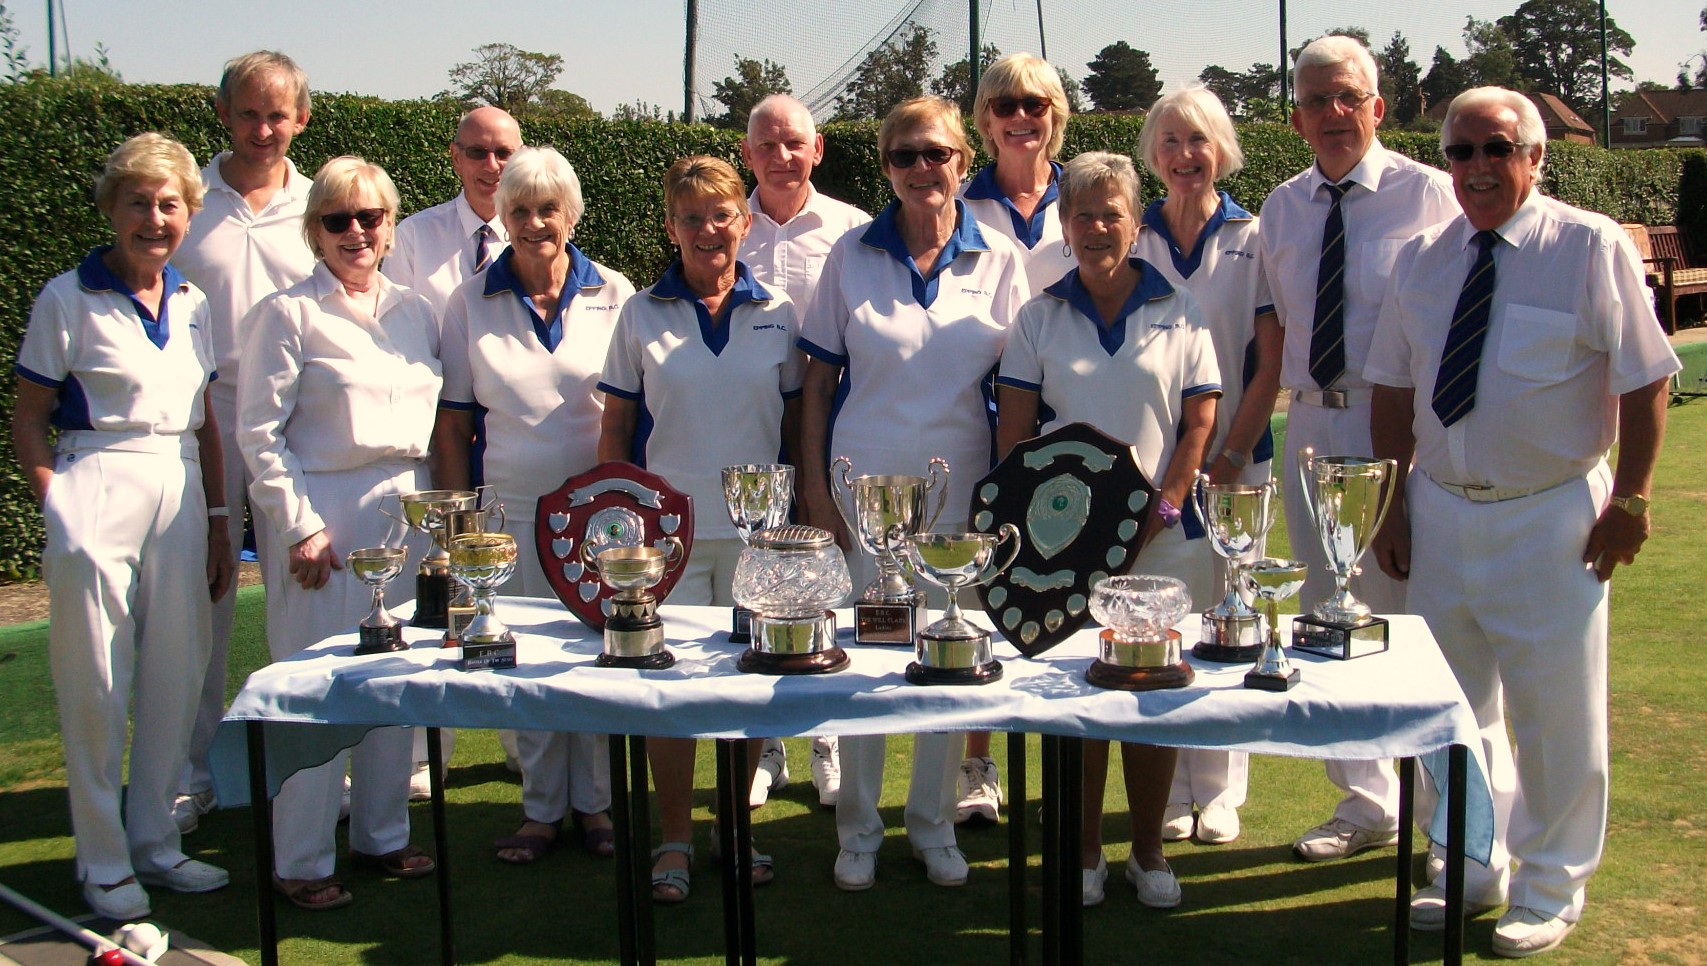 Epping Bowls Club members after a competitive final weekend of action.